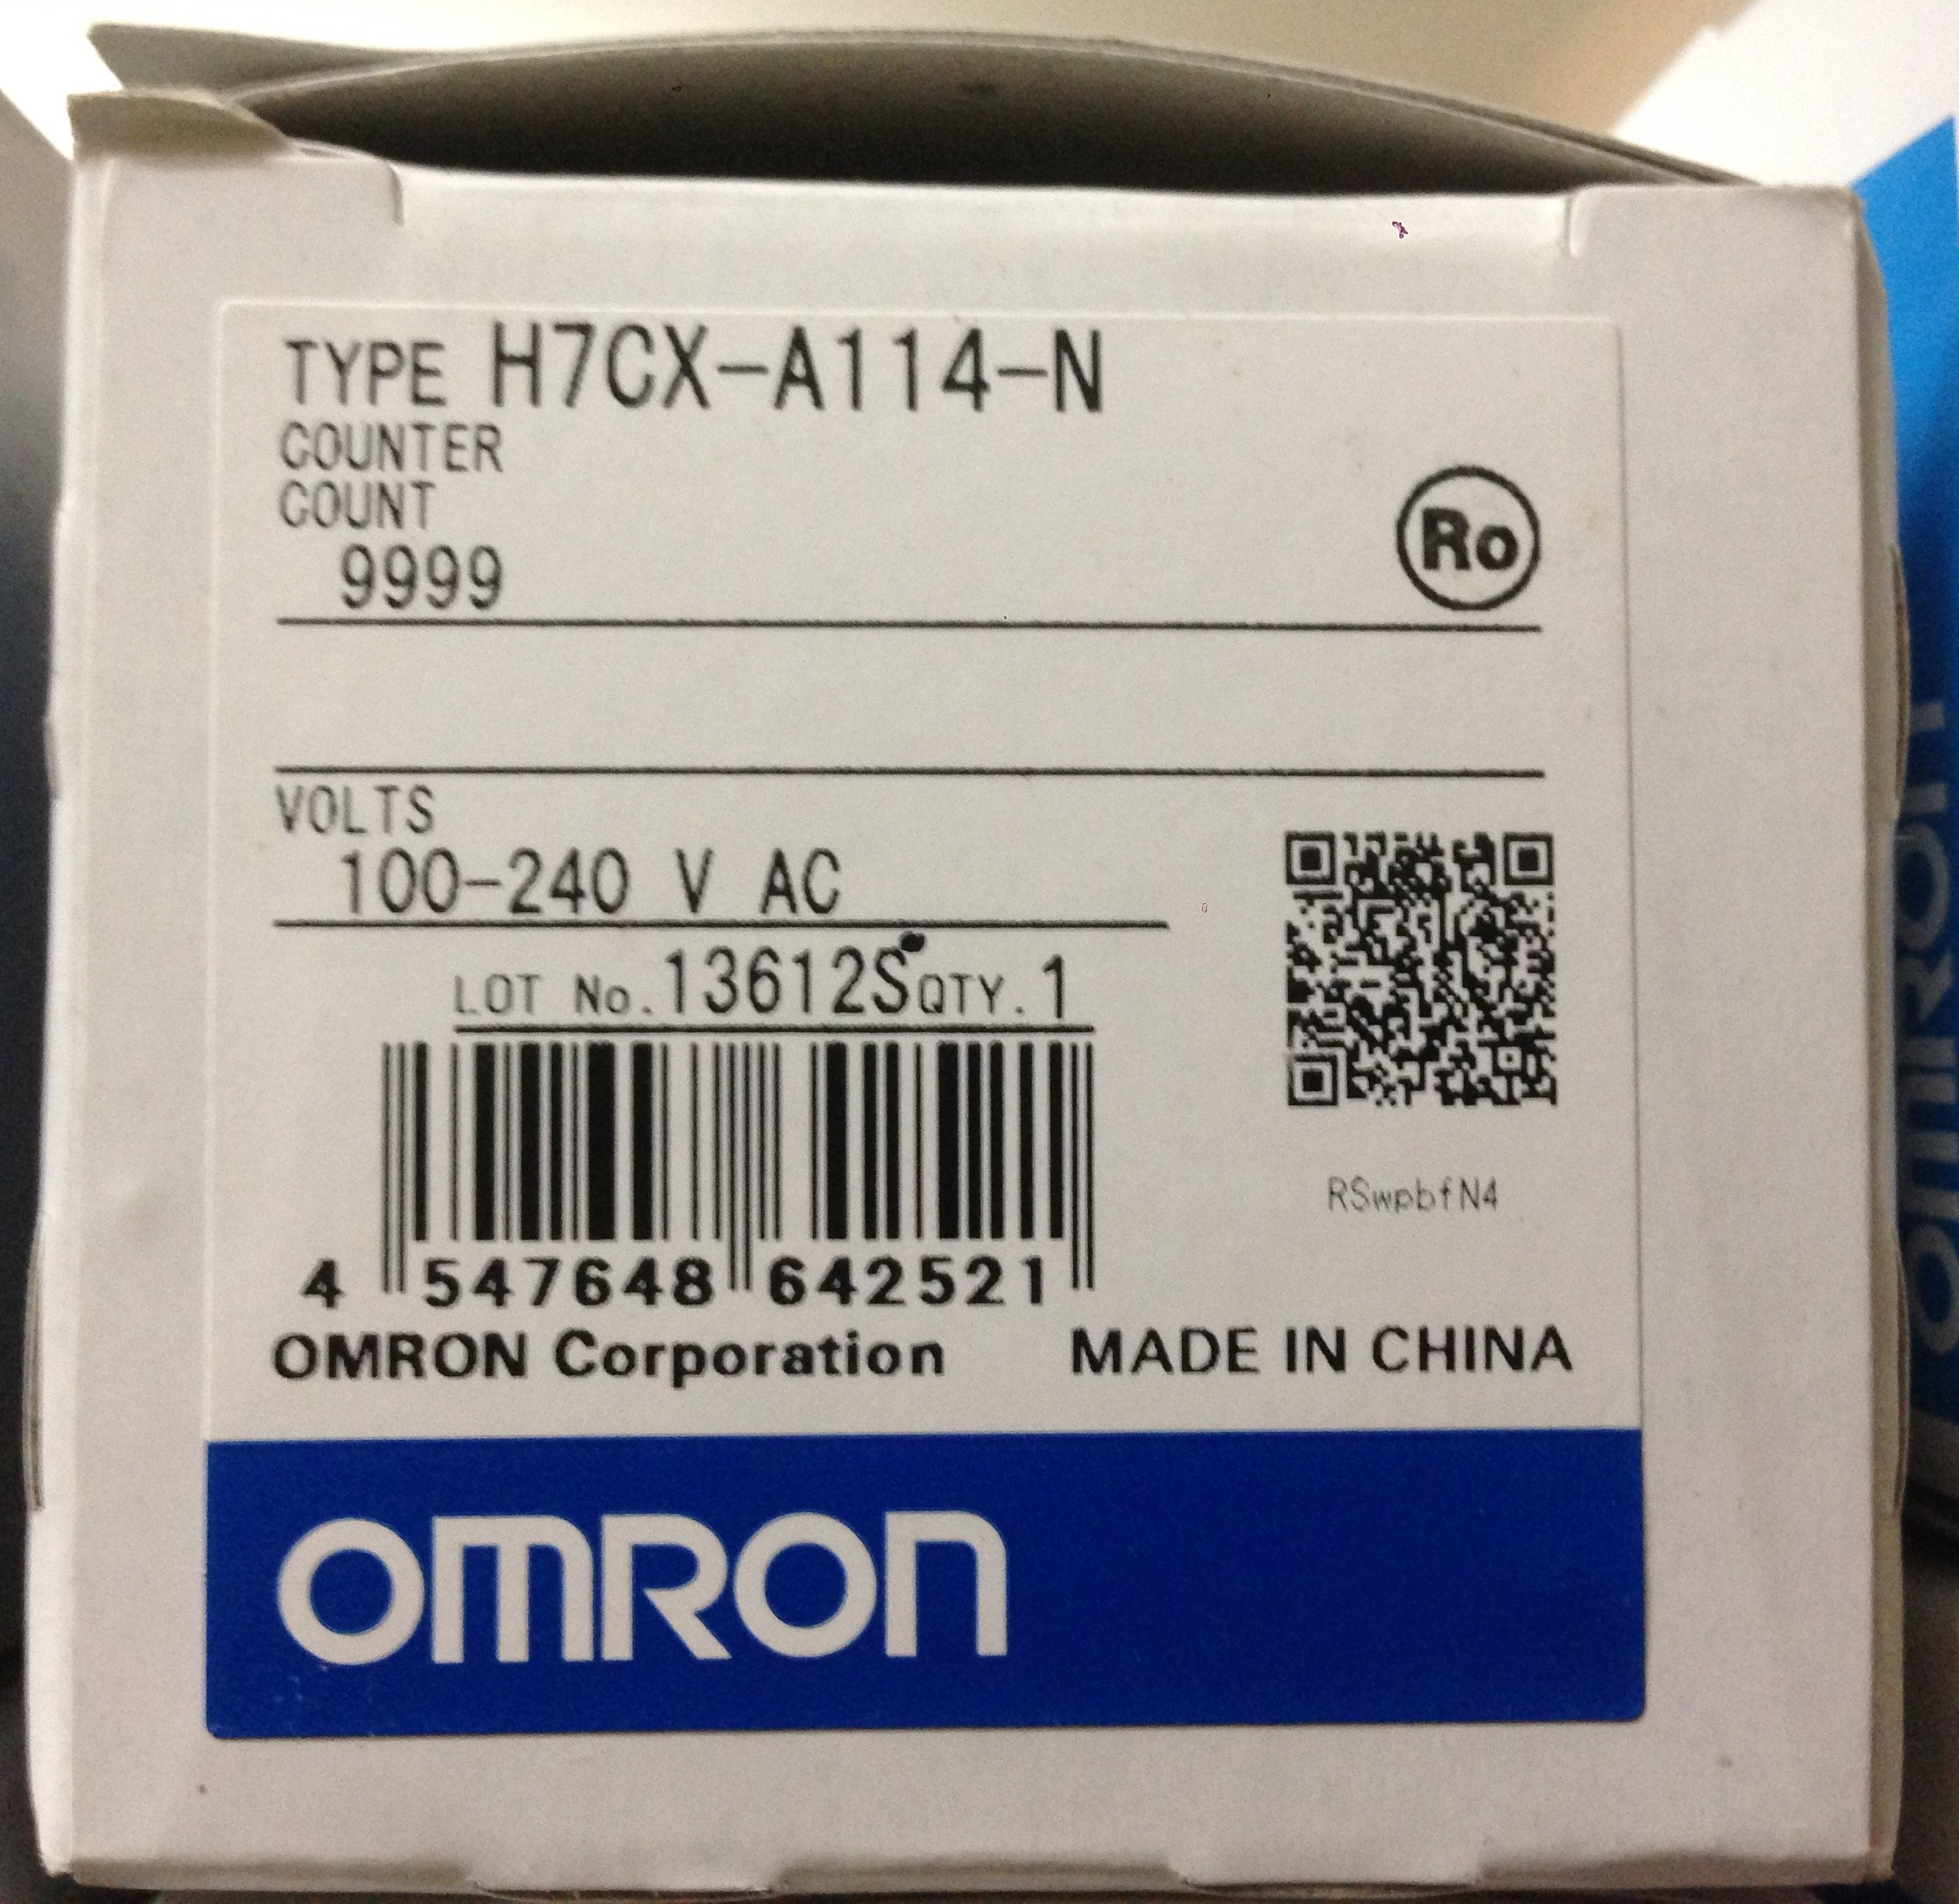 Omron H7CX-A114-N Digital Counter by Omron